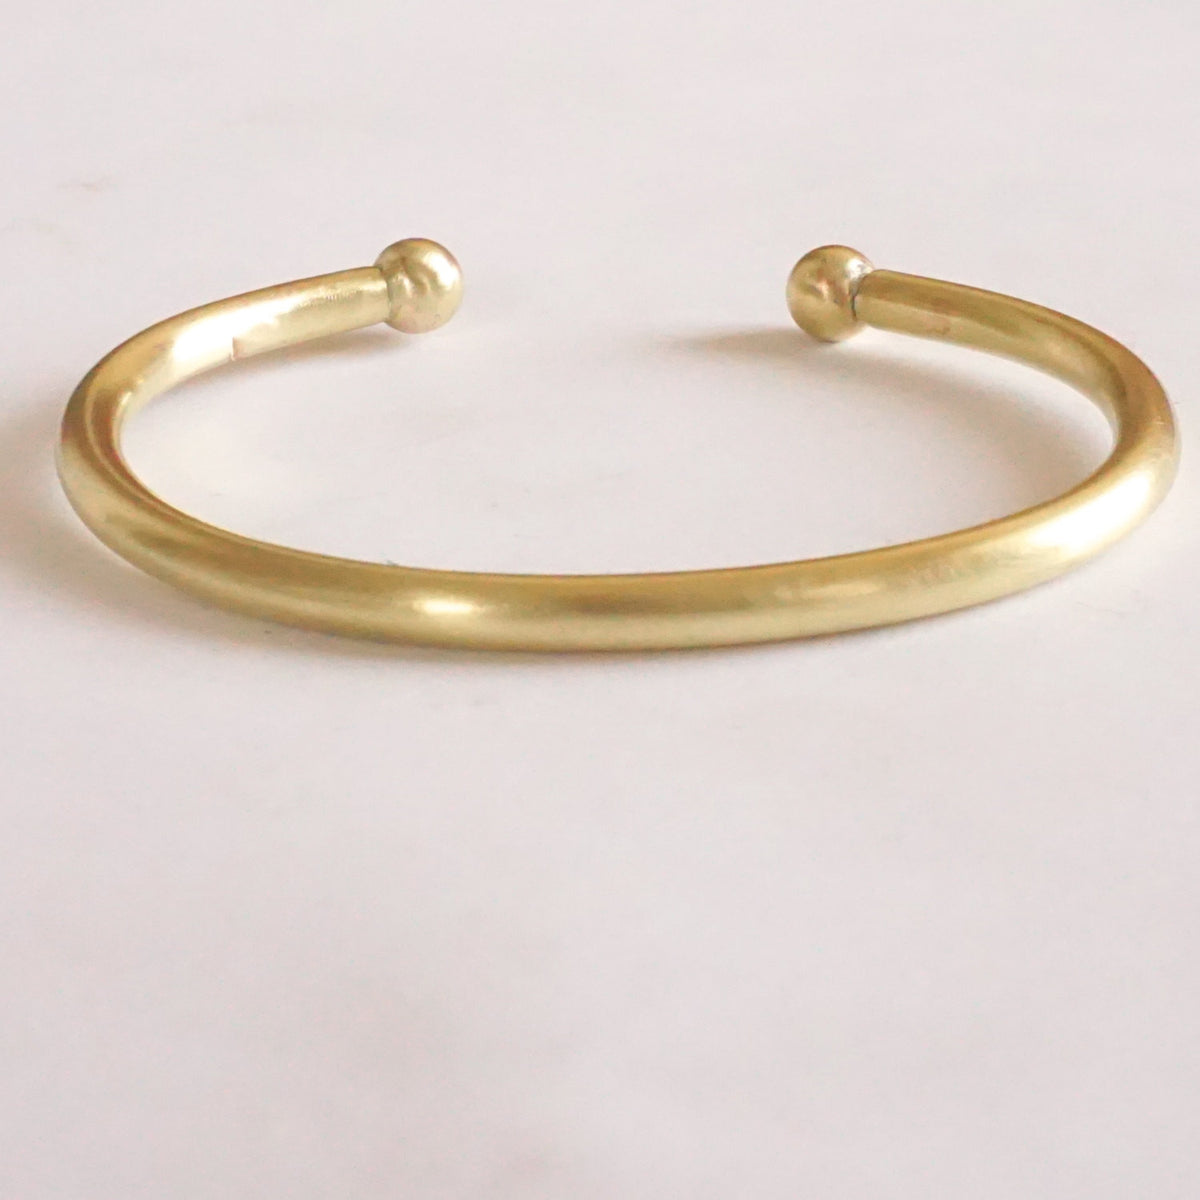 Classic Hand-Made Gold Colored Brass or Sterling Silver Torque Bracelet w/ Solid Ball Ends - 0198 - Virginia Wynne Designs